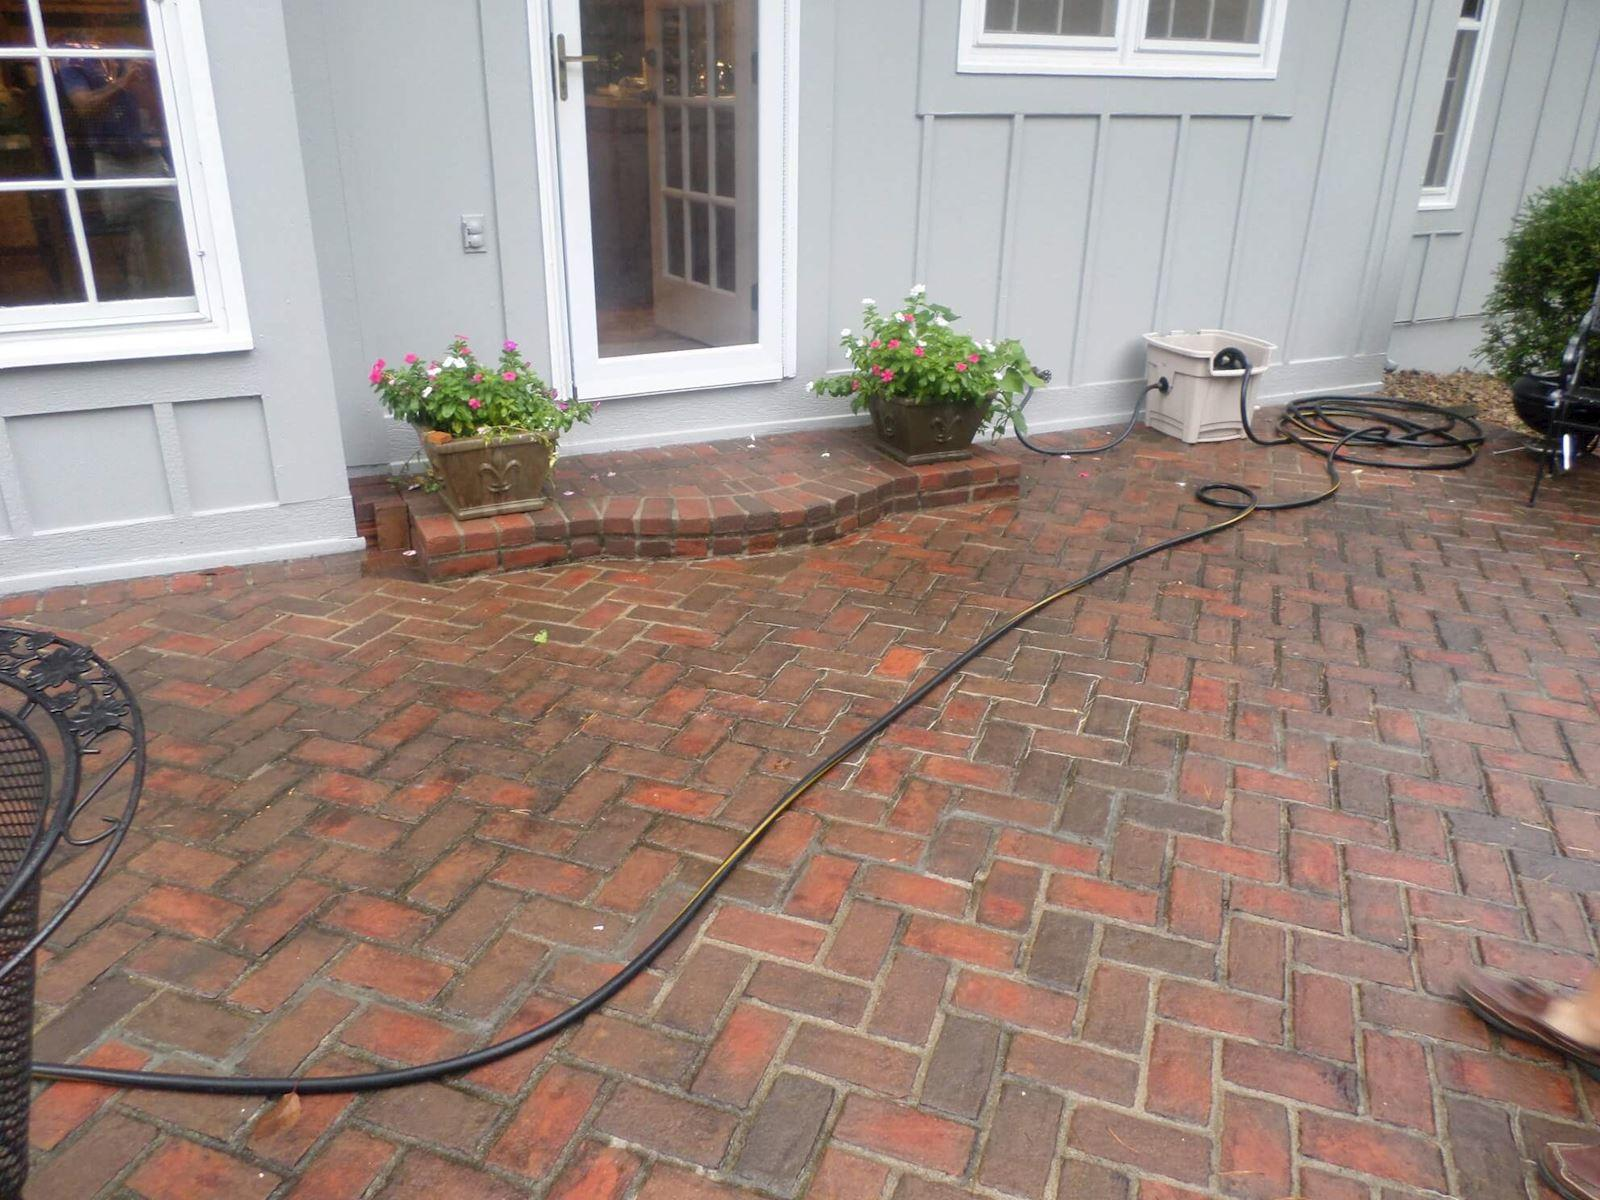 Settling Back Patio in Overland Park, KS Lifted With Polyjacking